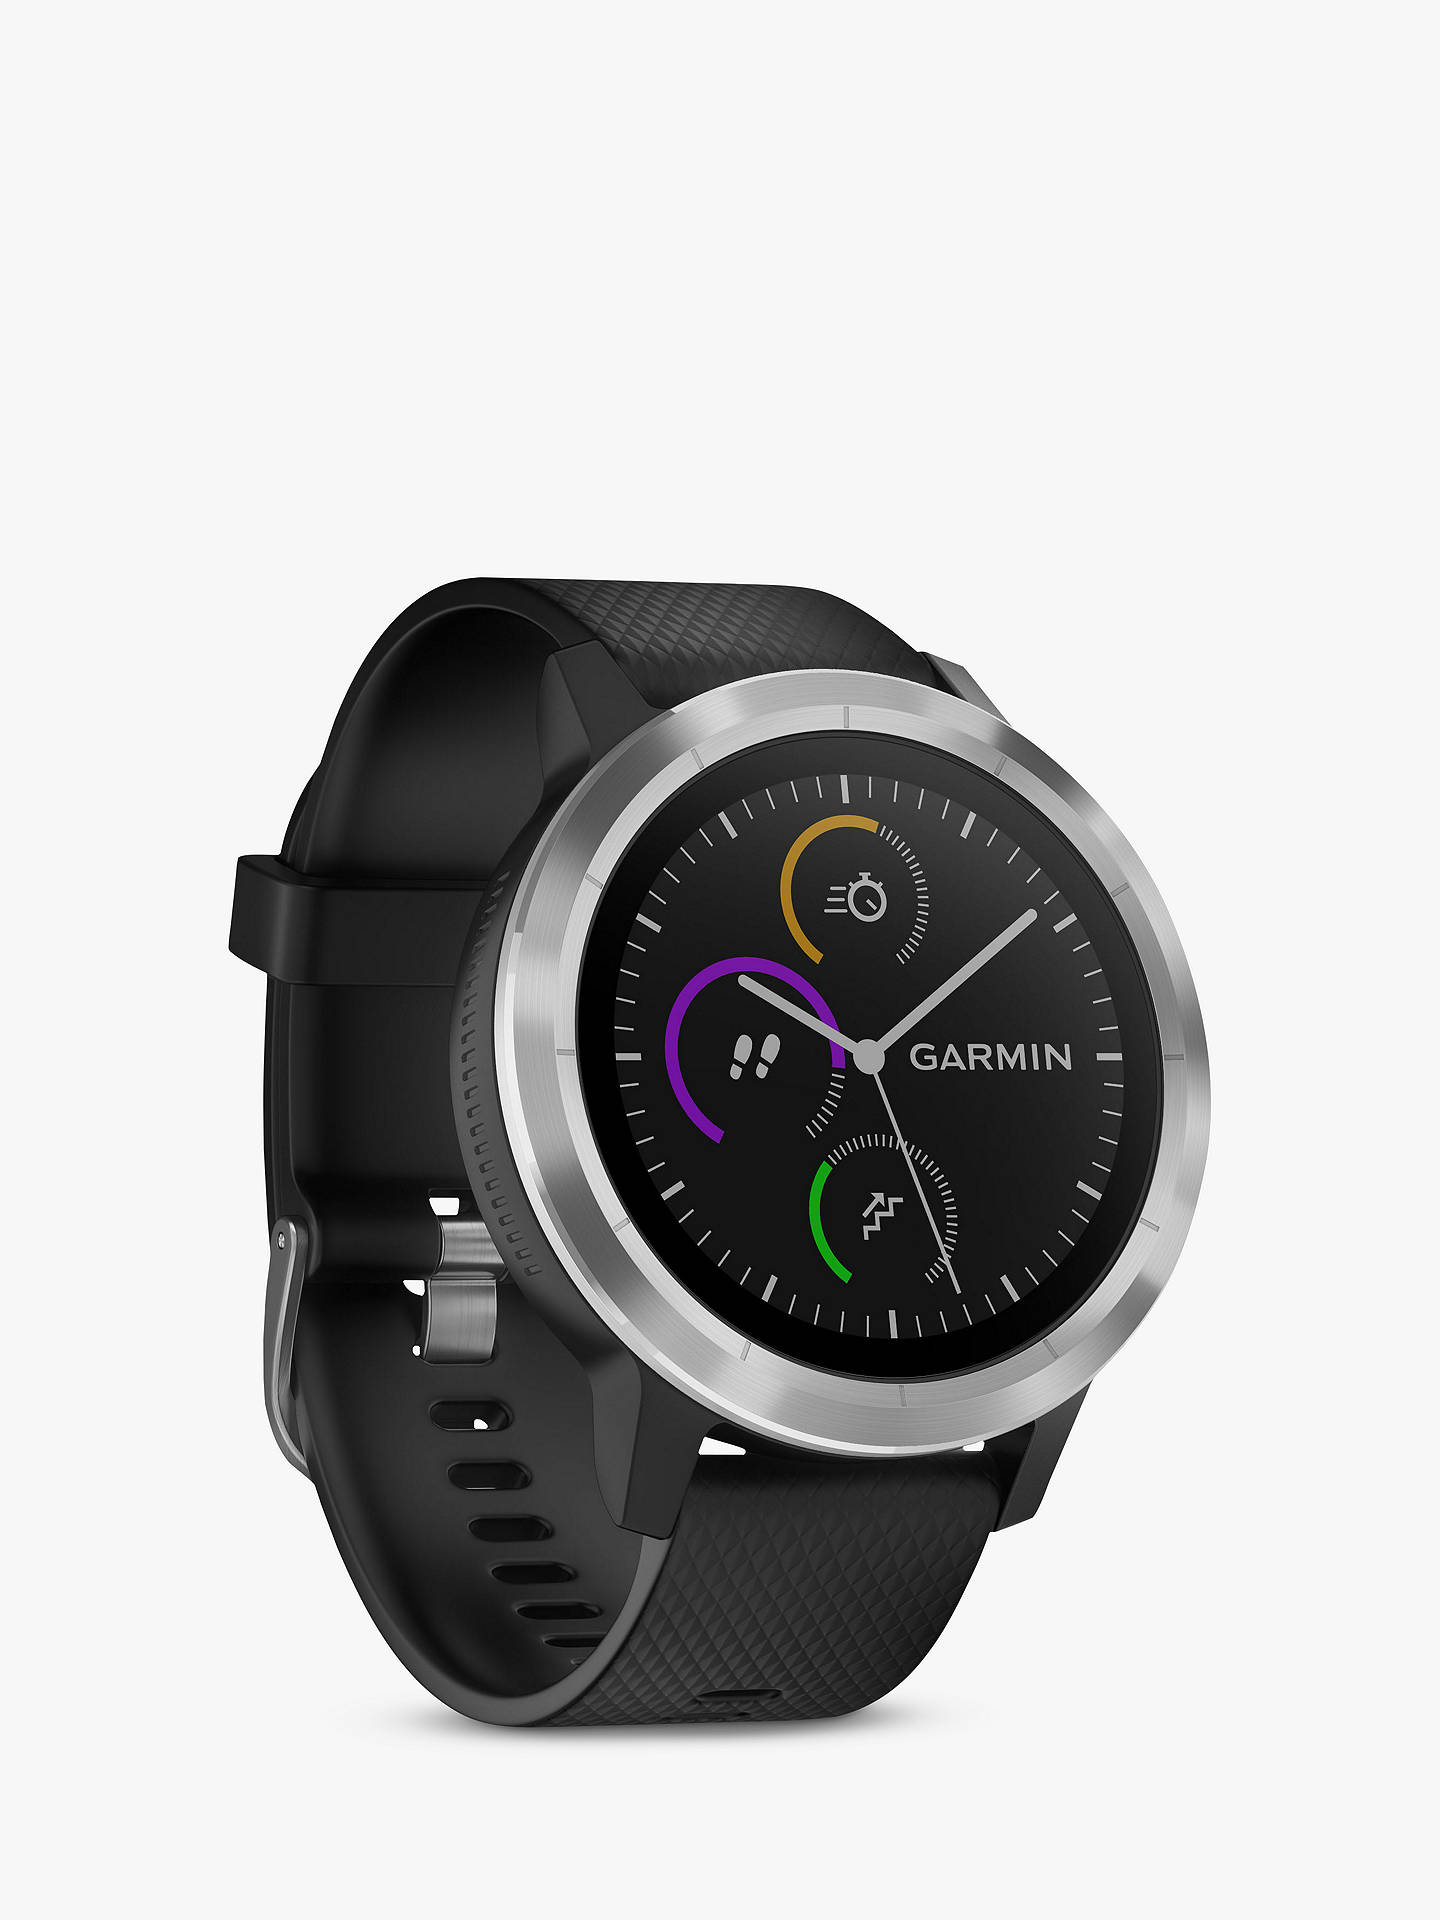 BuyGarmin Vivoactive 3 GPS Smartwatch with Contactless Payment and HR, Black/Stainless Online at johnlewis.com